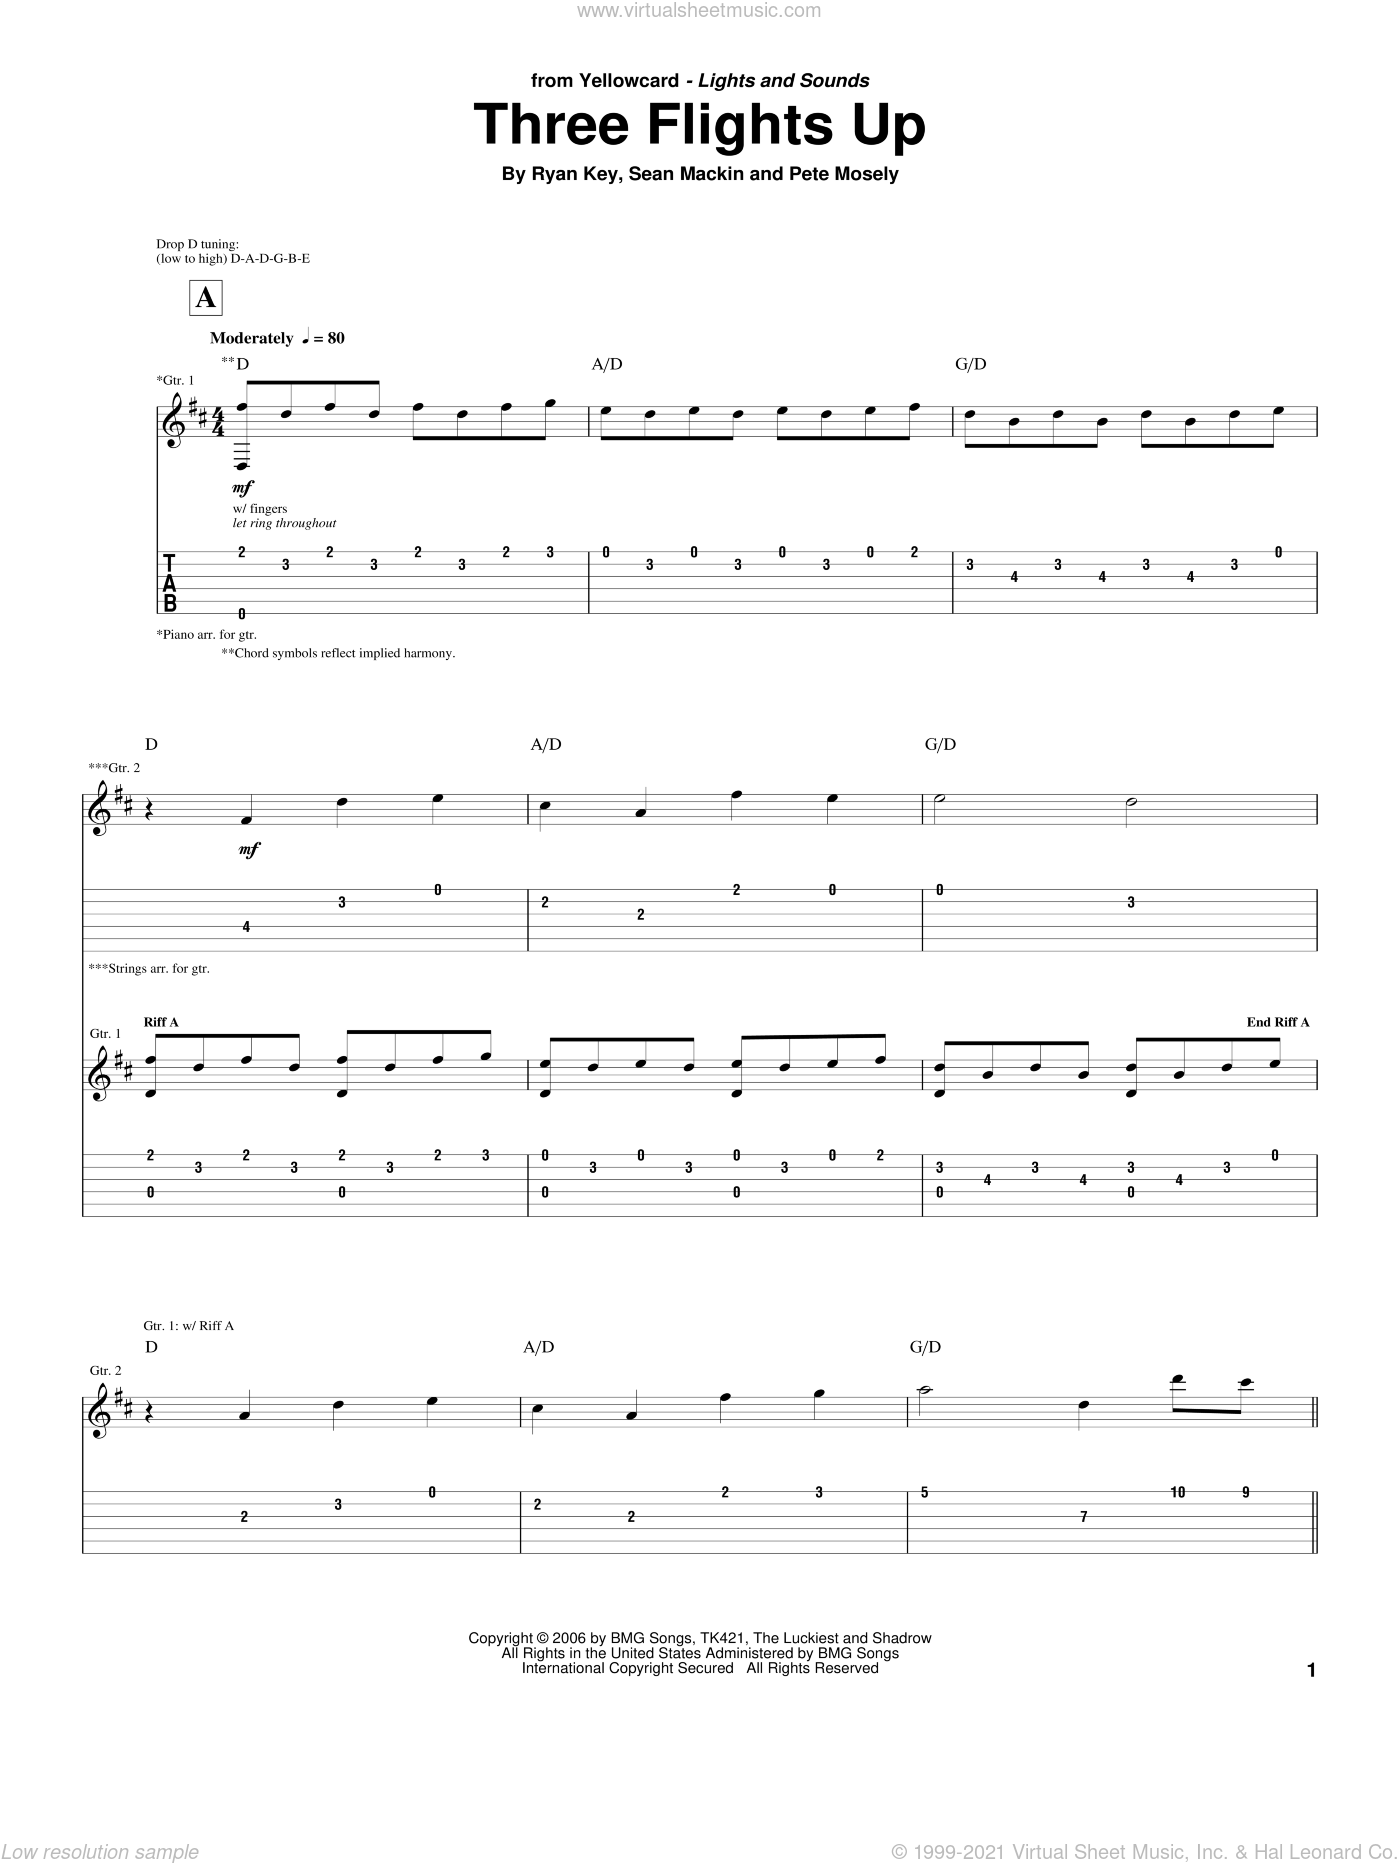 Three Flights Up sheet music for guitar (tablature) by Yellowcard, Pete Mosely, Ryan Key and Sean Mackin, intermediate skill level